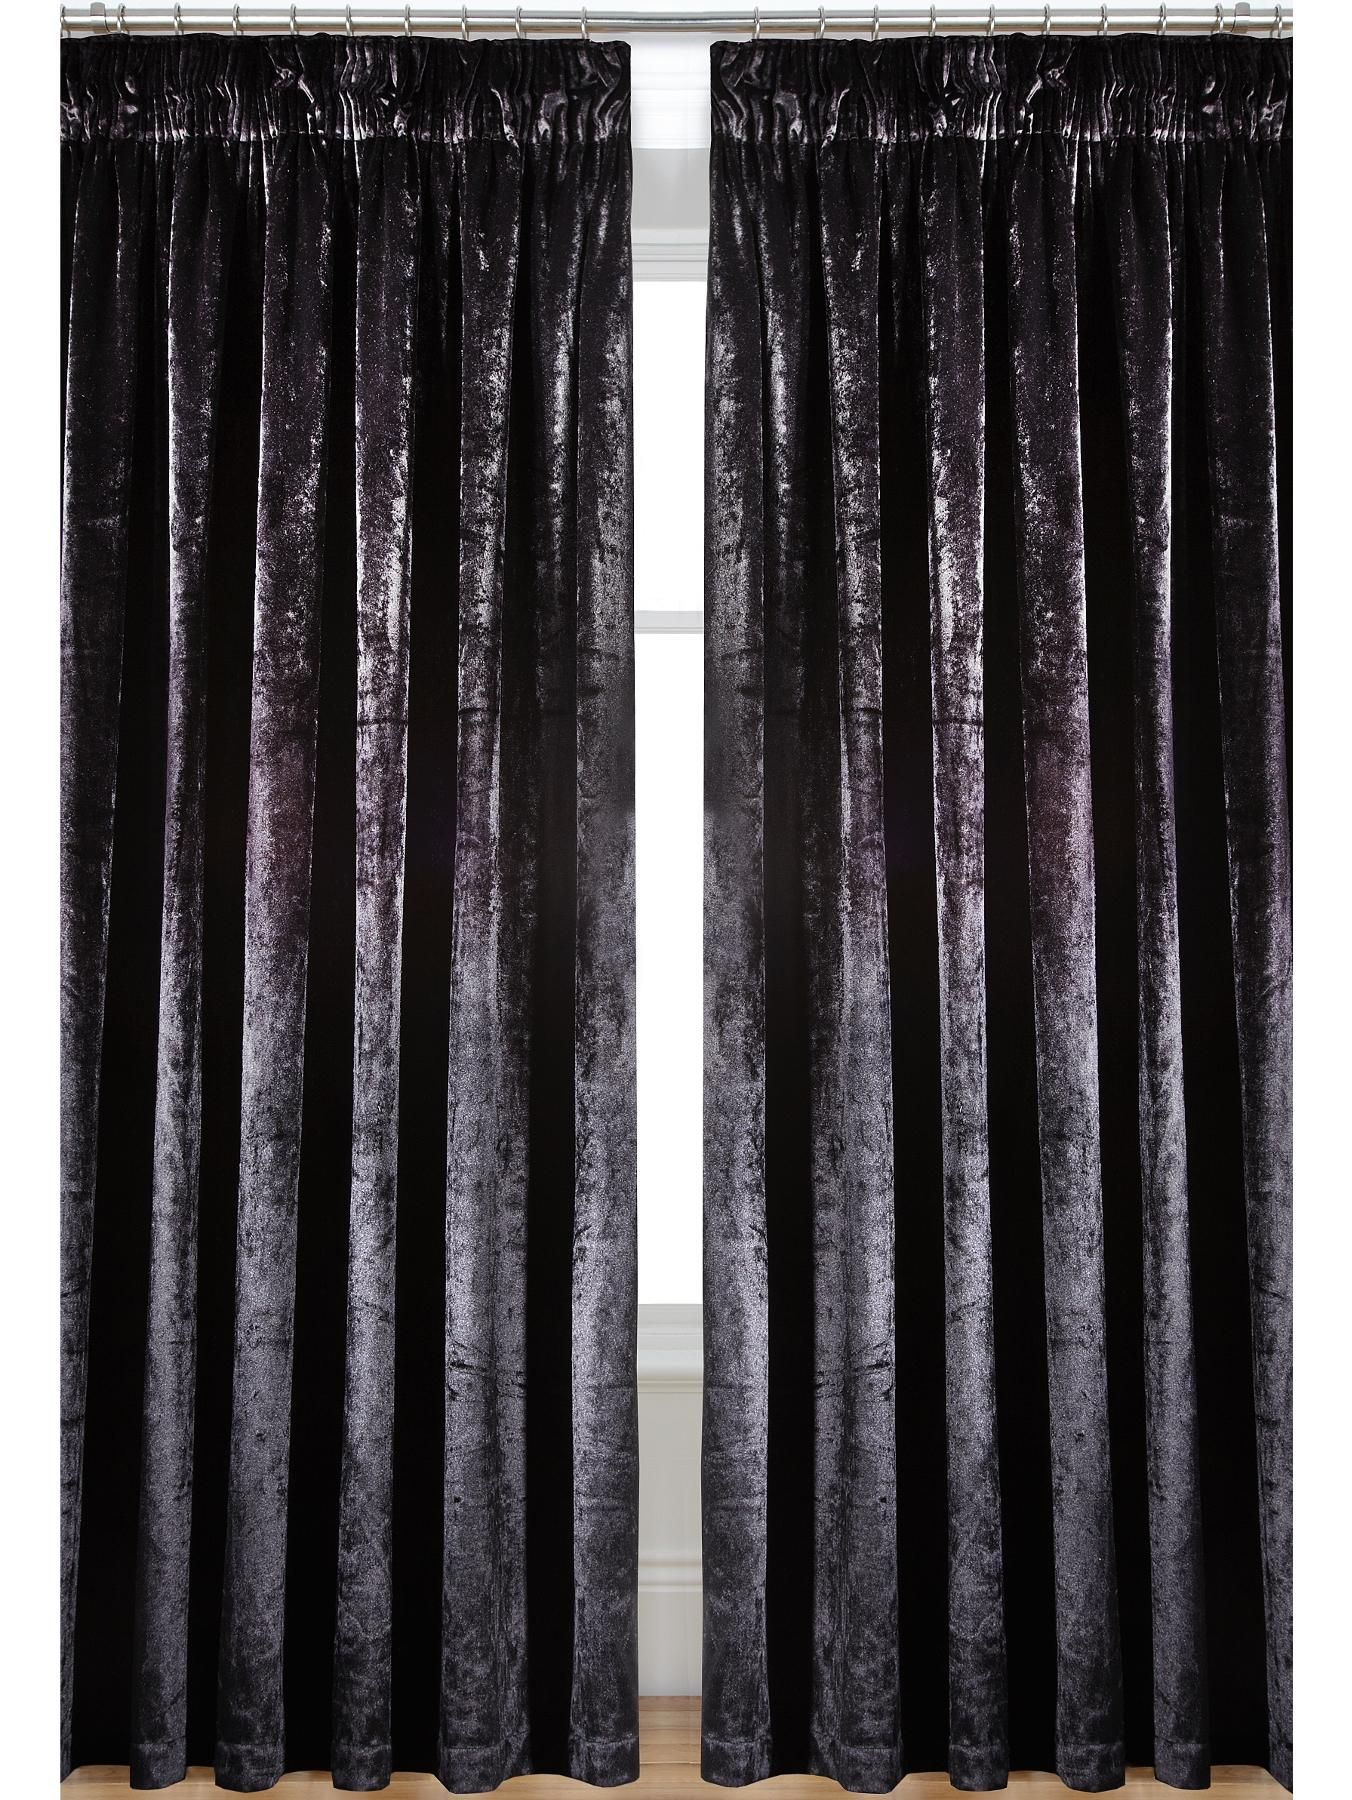 and design curtains uncategorized pencil cute lined astonishing pair made velvet white for grey ready off jacquard black ideas curtain ever pleat tfile pict inspiration